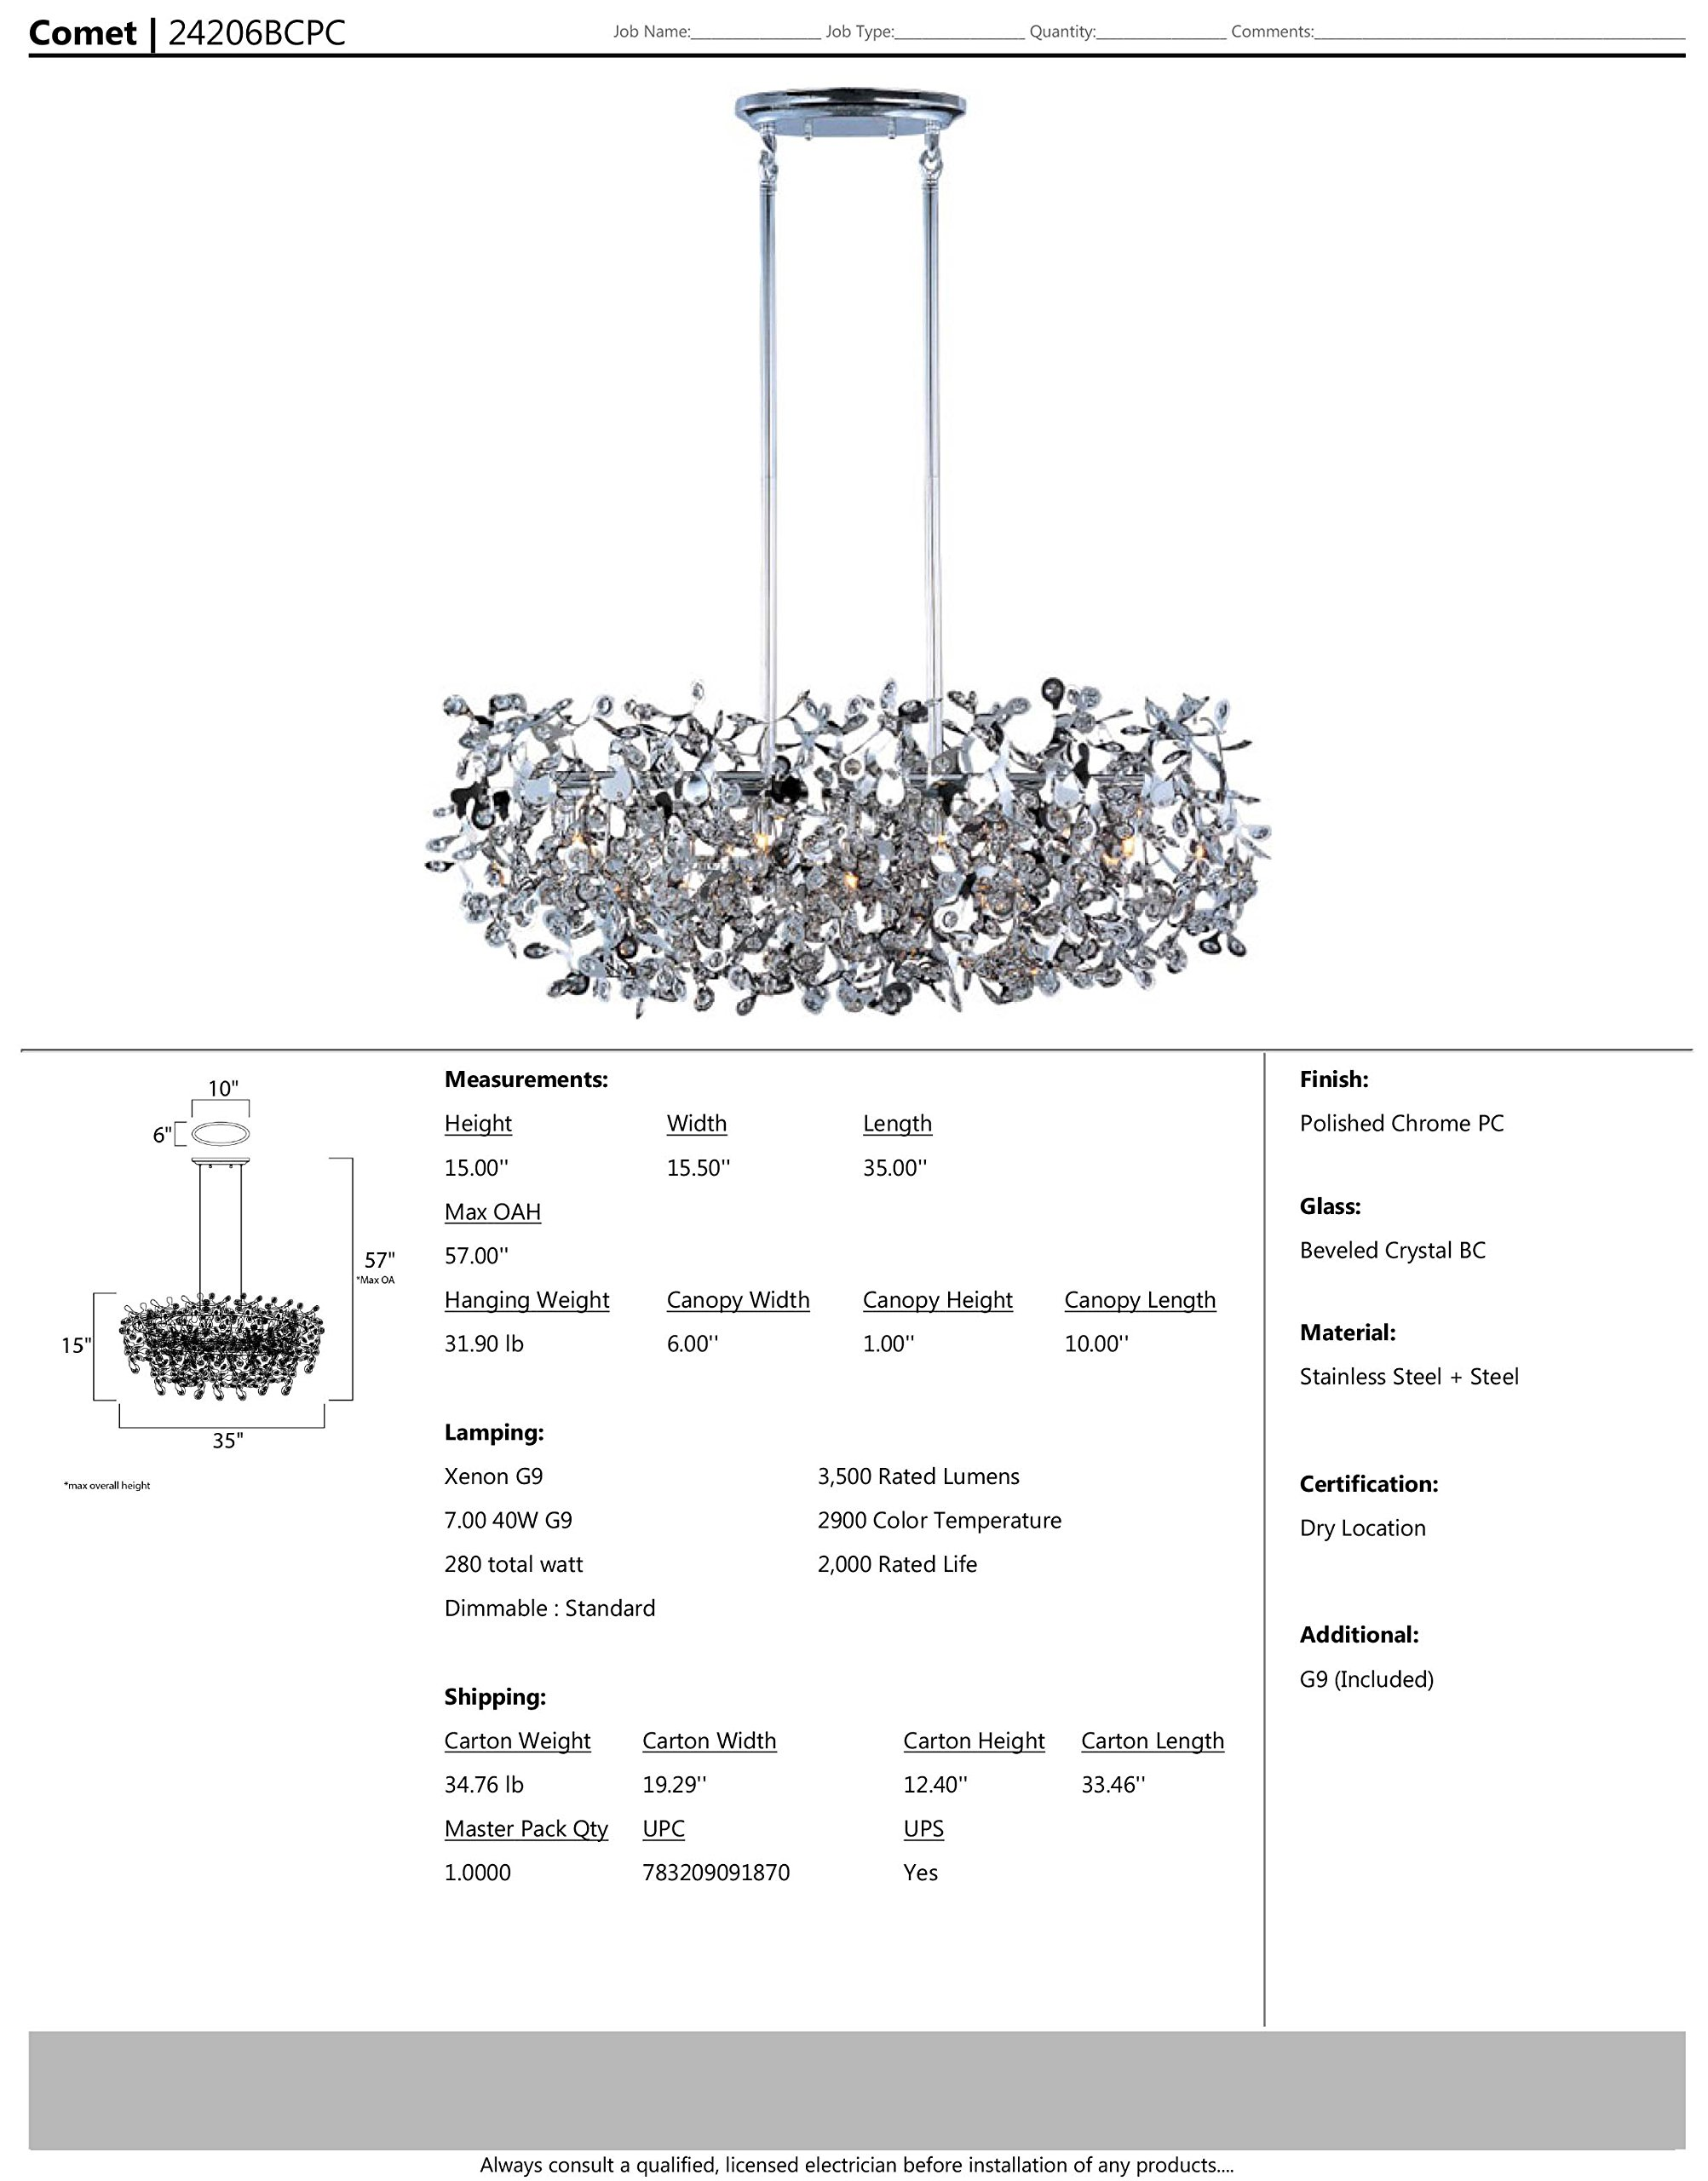 Maxim 24206BCPC Comet 7-Light Pendant, Polished Chrome Finish, Beveled Crystal Glass, G9 Xenon Xenon Bulb , 100W Max., Wet Safety Rating, Standard Dimmable, Glass Shade Material, 1150 Rated Lumens by Maxim Lighting (Image #4)